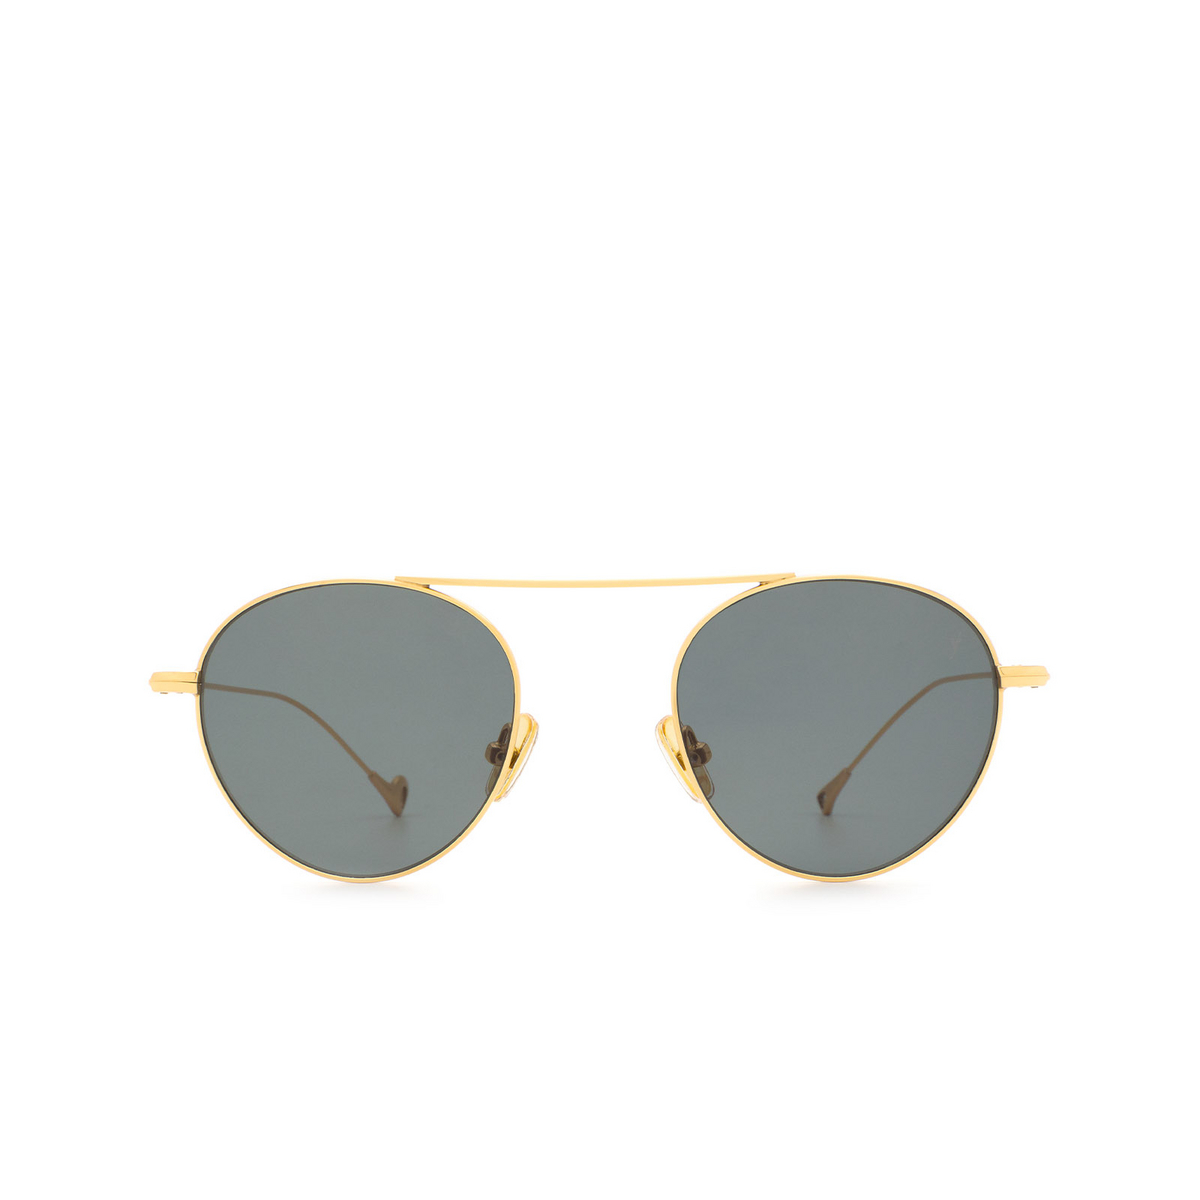 Eyepetizer® Round Sunglasses: En Bossa color Gold C.4-40 - front view.